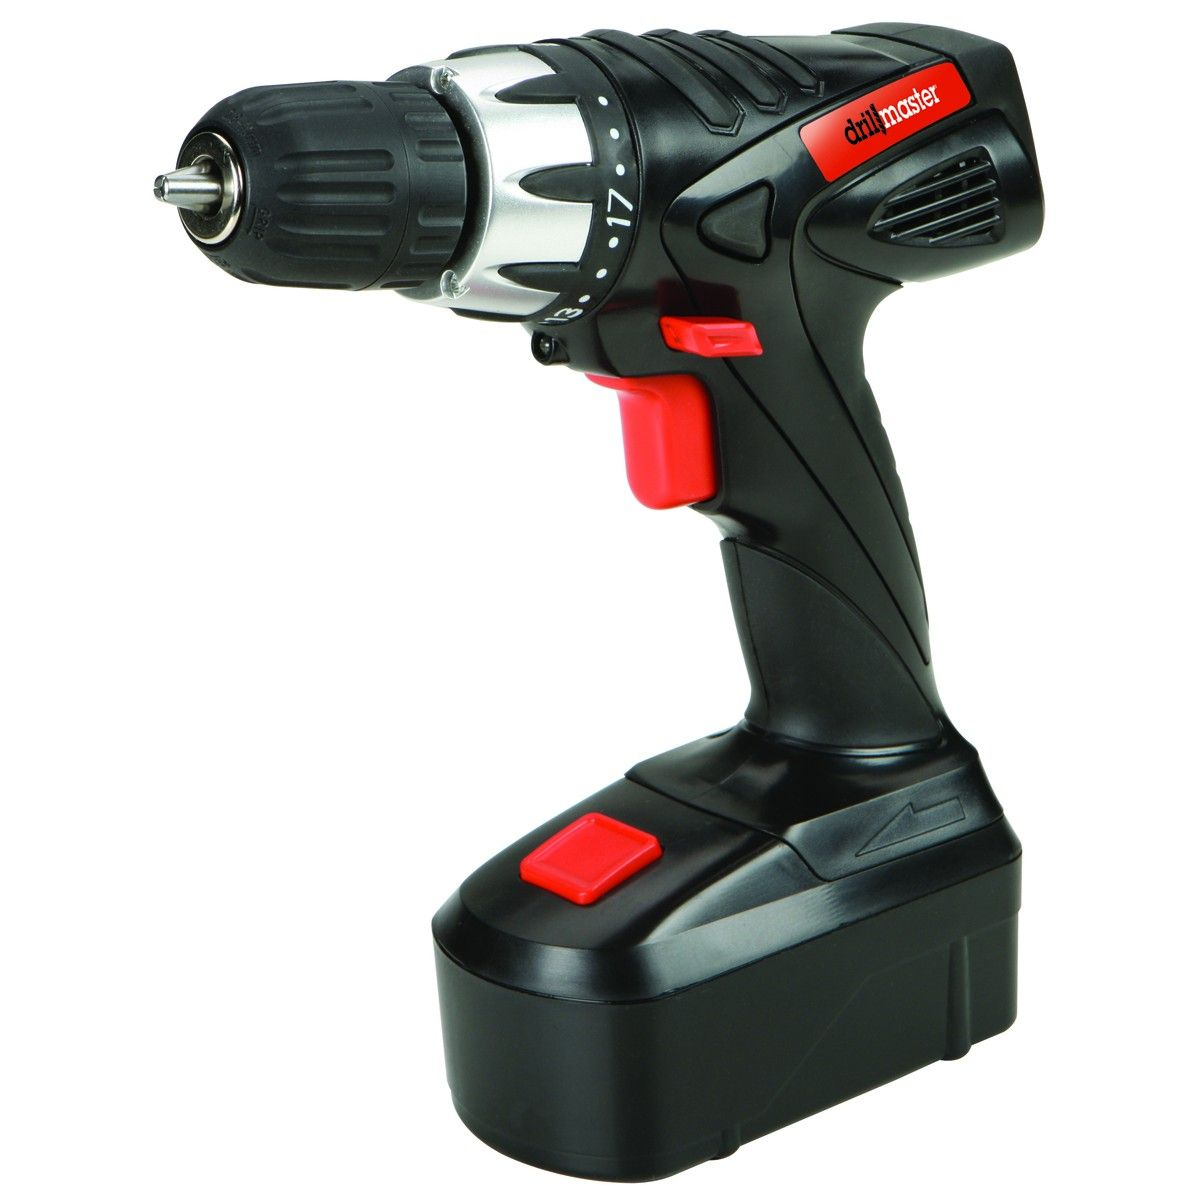 18v 3 8 In Cordless Drill Driver Kit With Keyless Chuck 21 Clutch Settings Cordless Drill Drill Cordless Drill Reviews